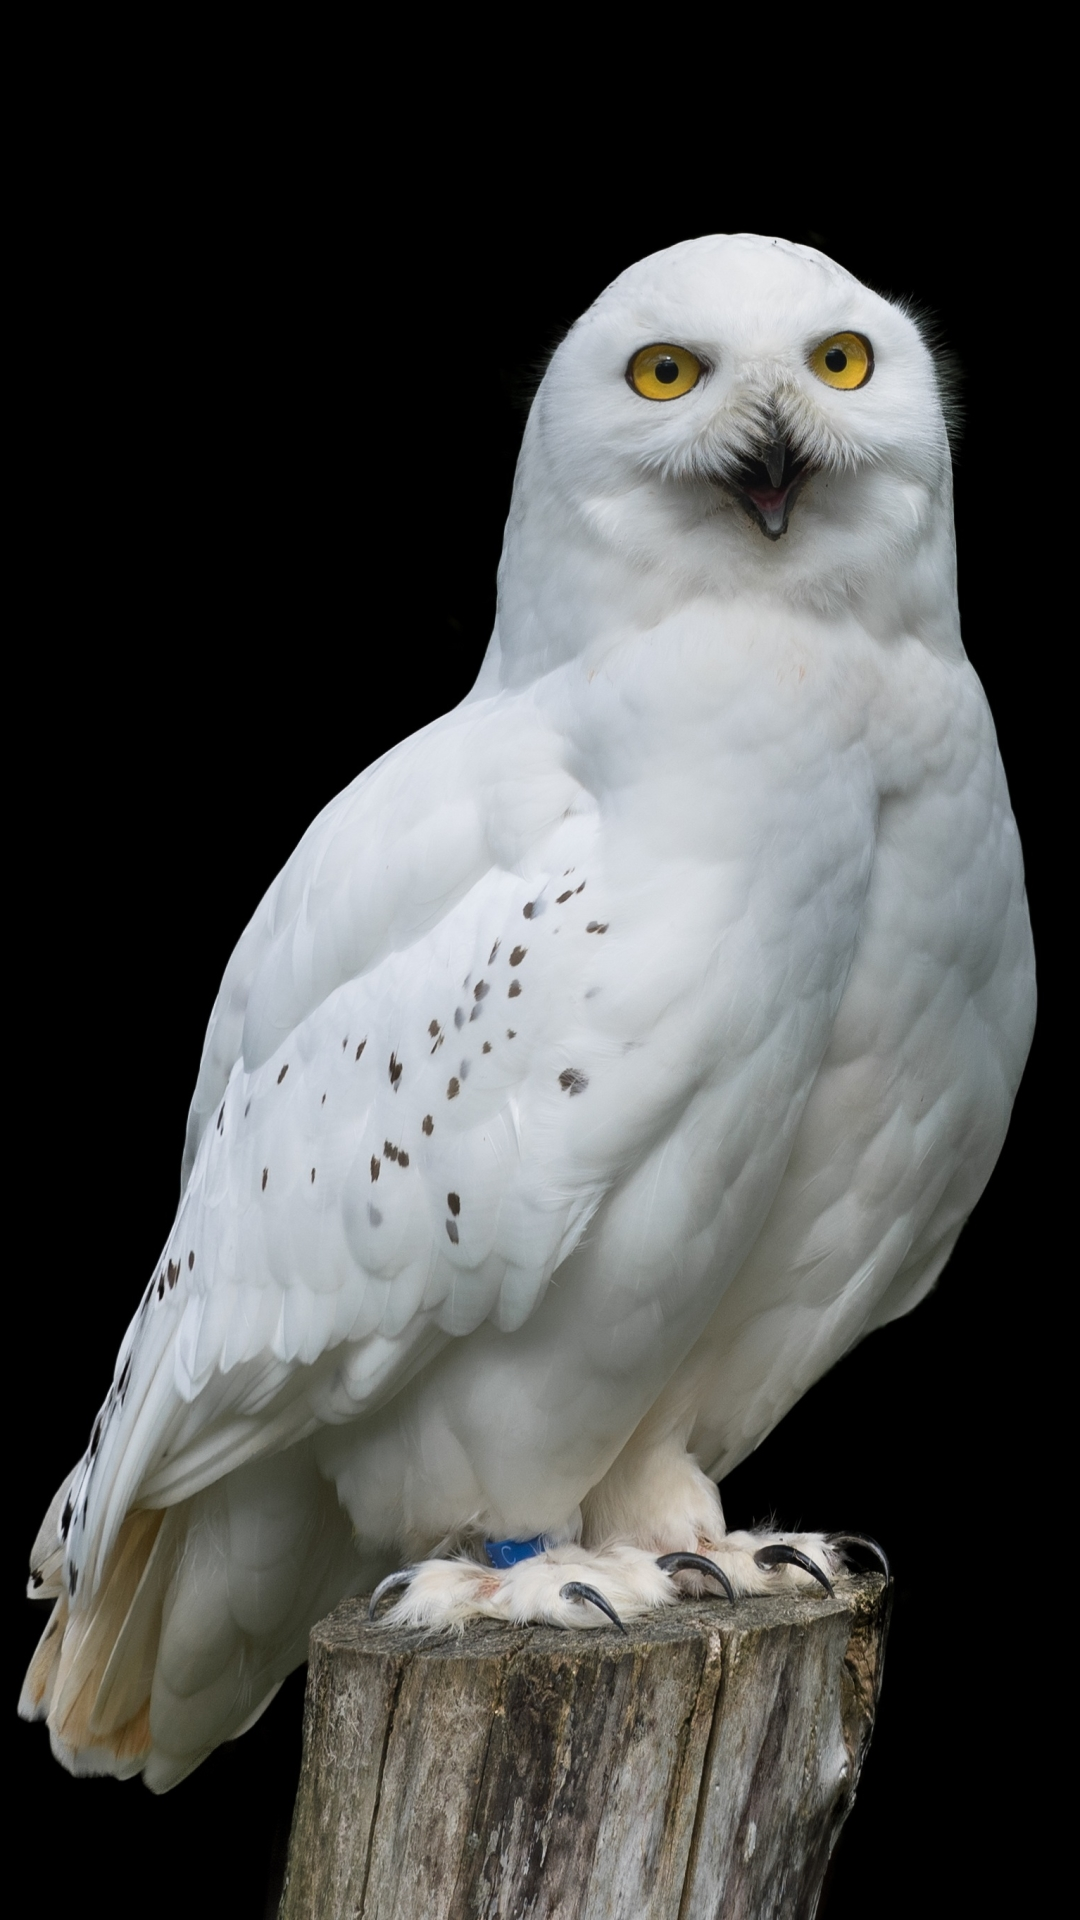 Animal Snowy Owl Mobile Wallpaper Snowy Owl Wallpapers